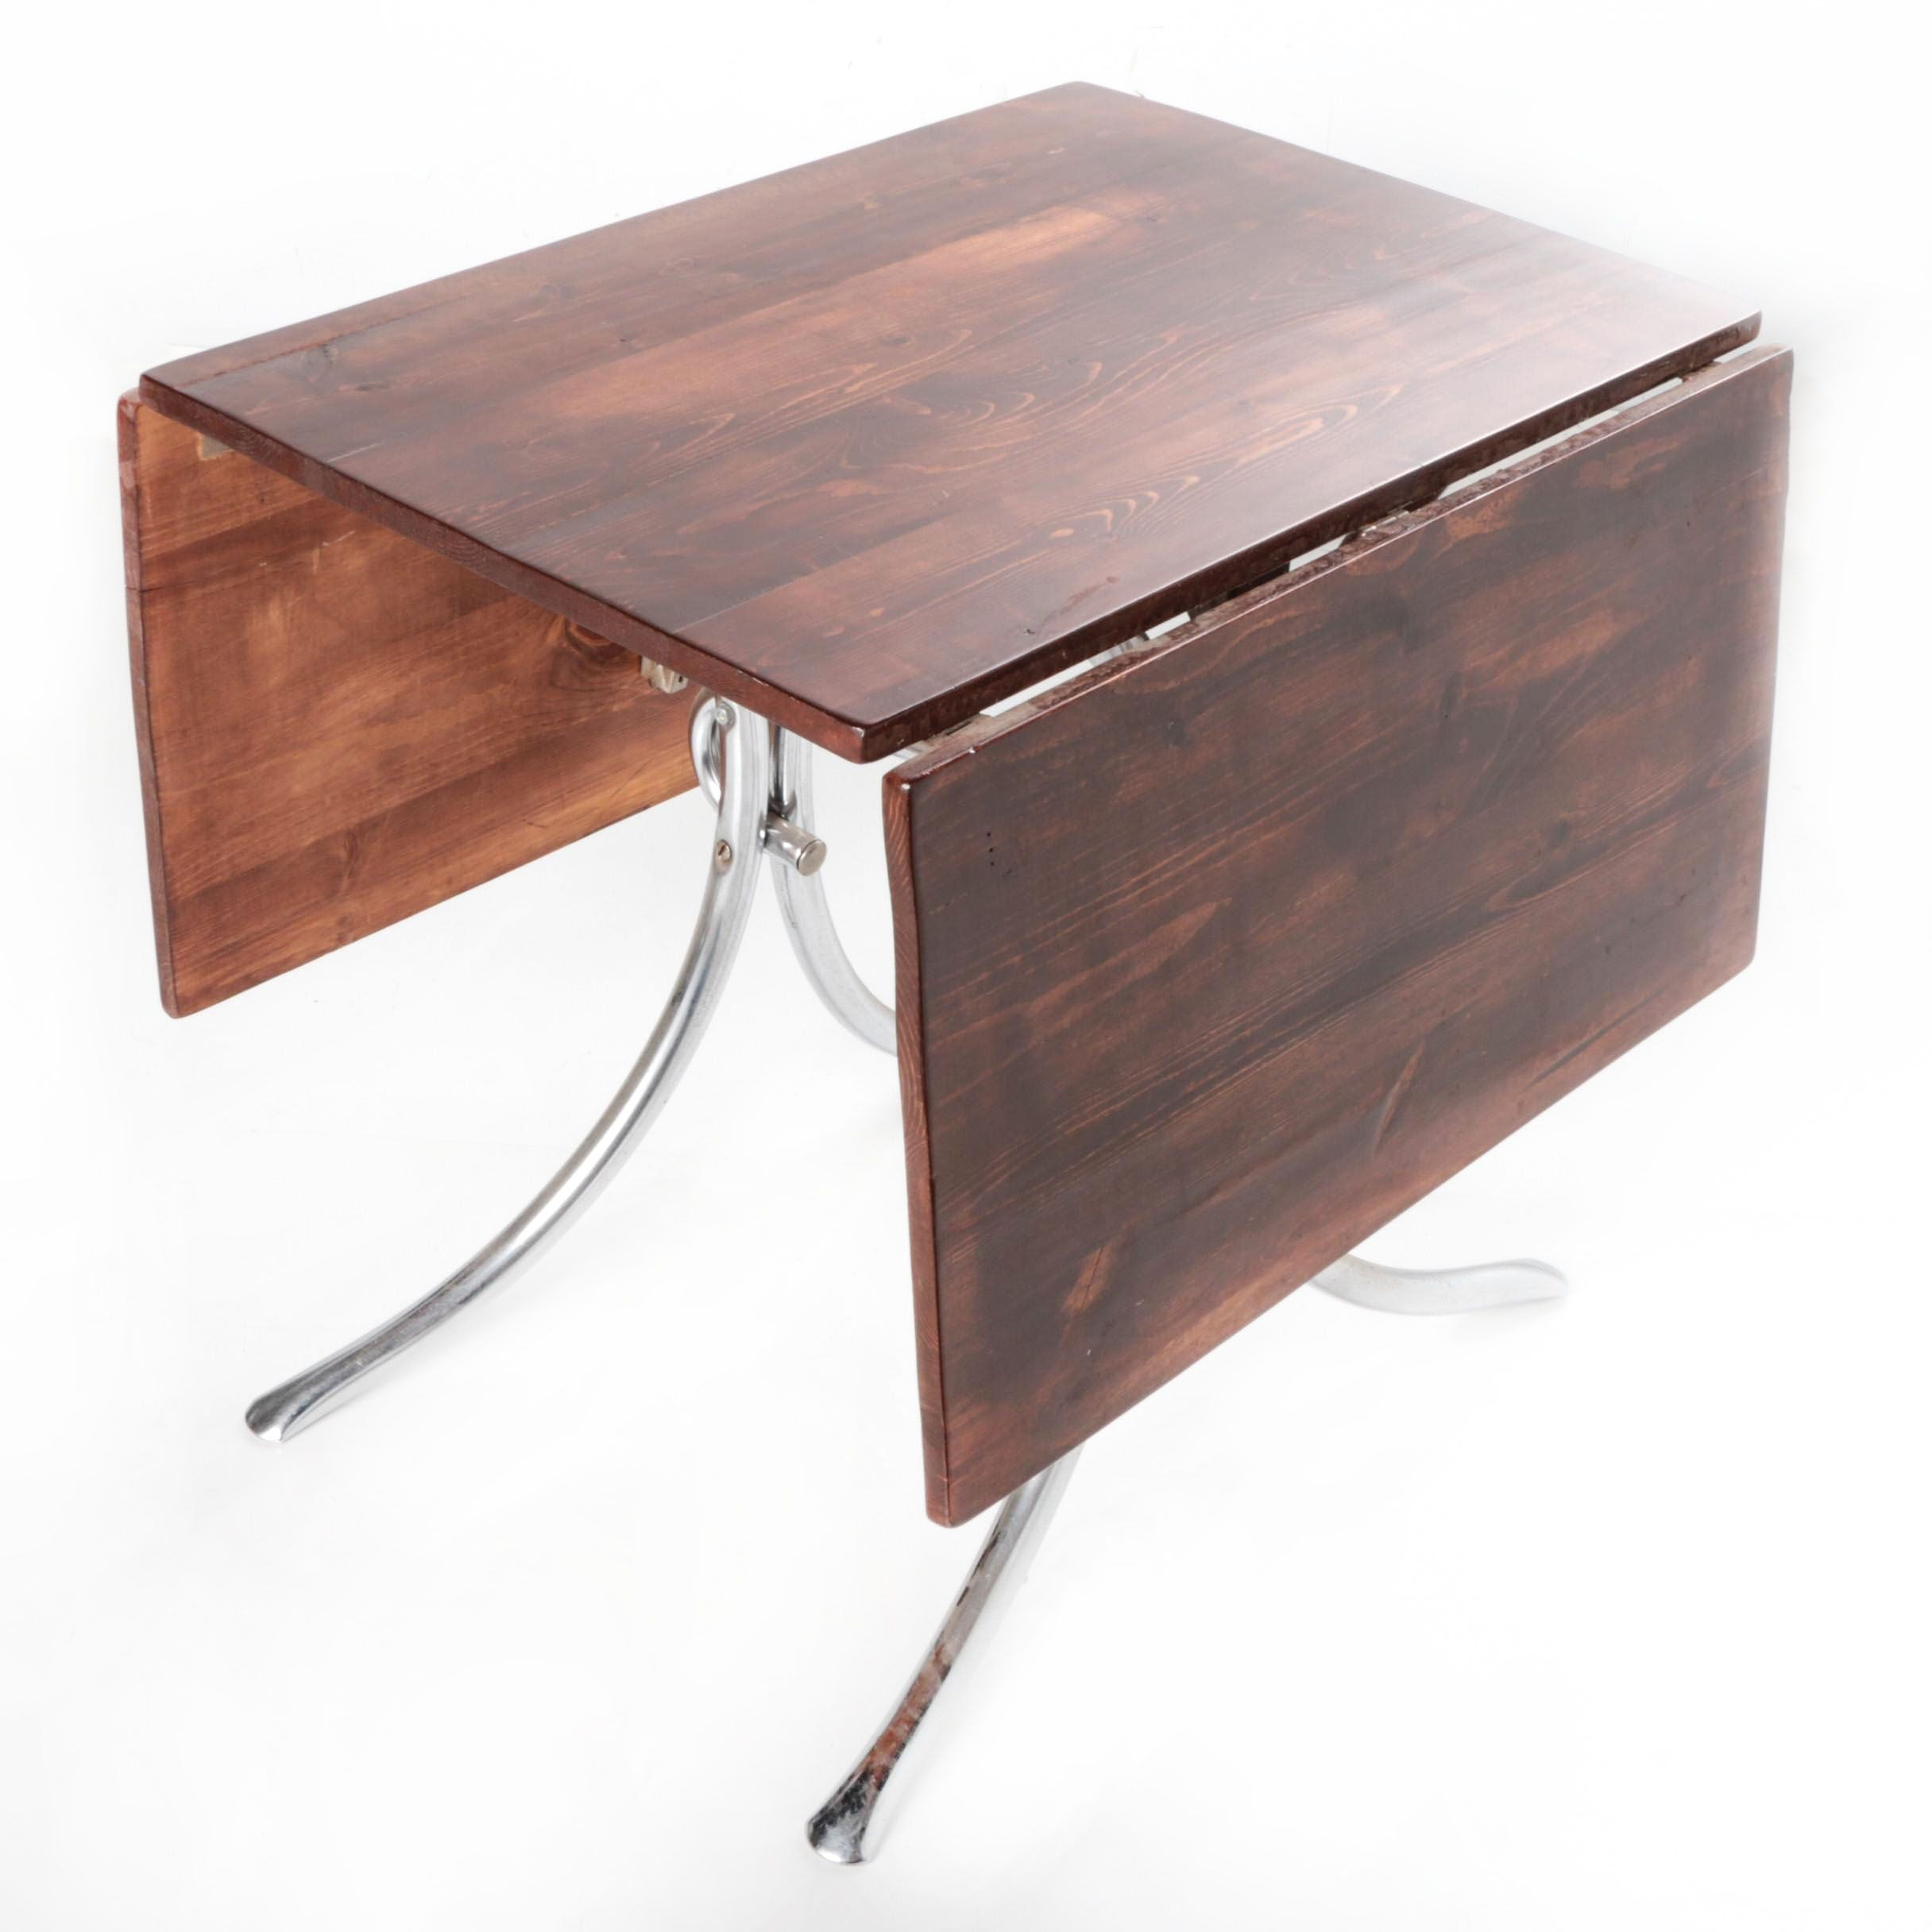 Contemporary Drop Leaf Table with Metal Legs